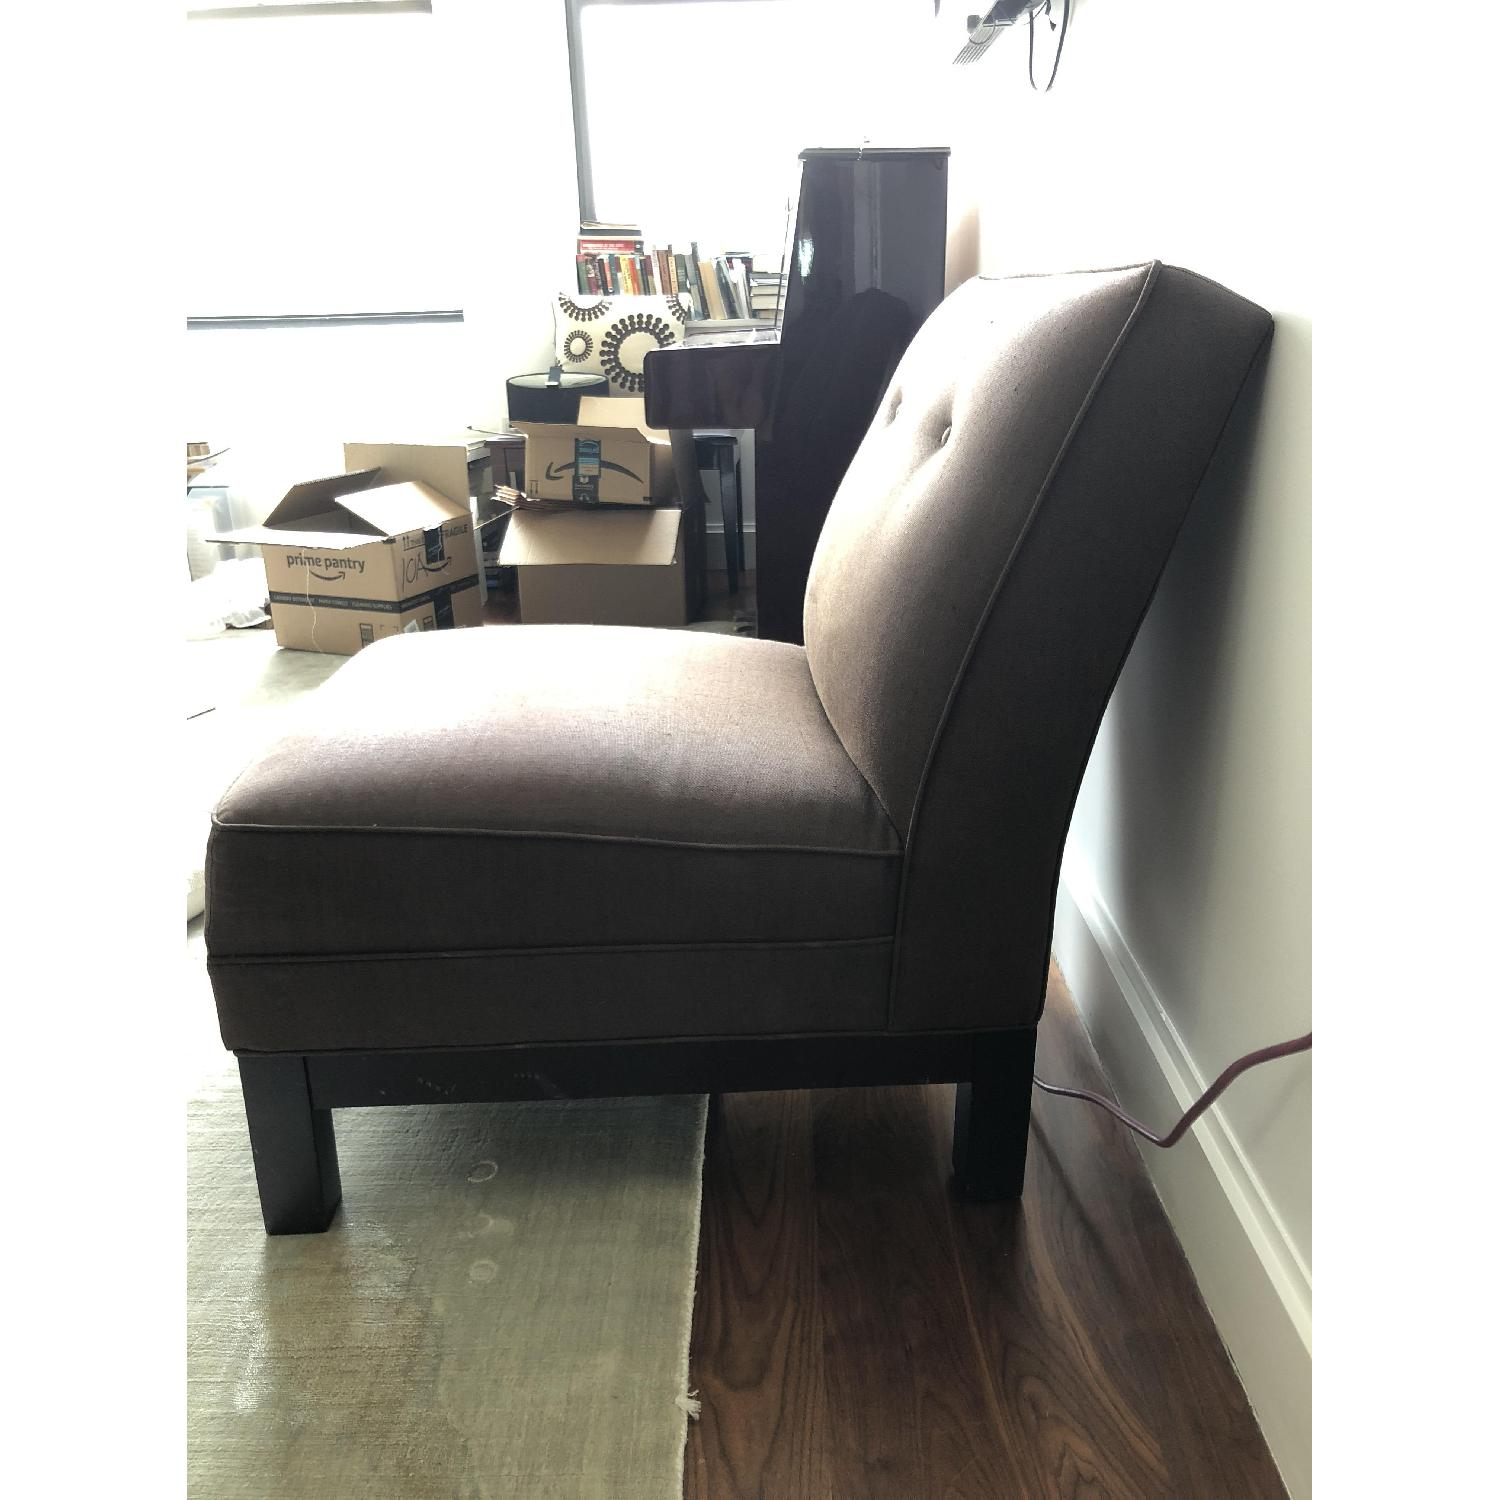 ABC Carpet and Home Slipper Chair - image-3